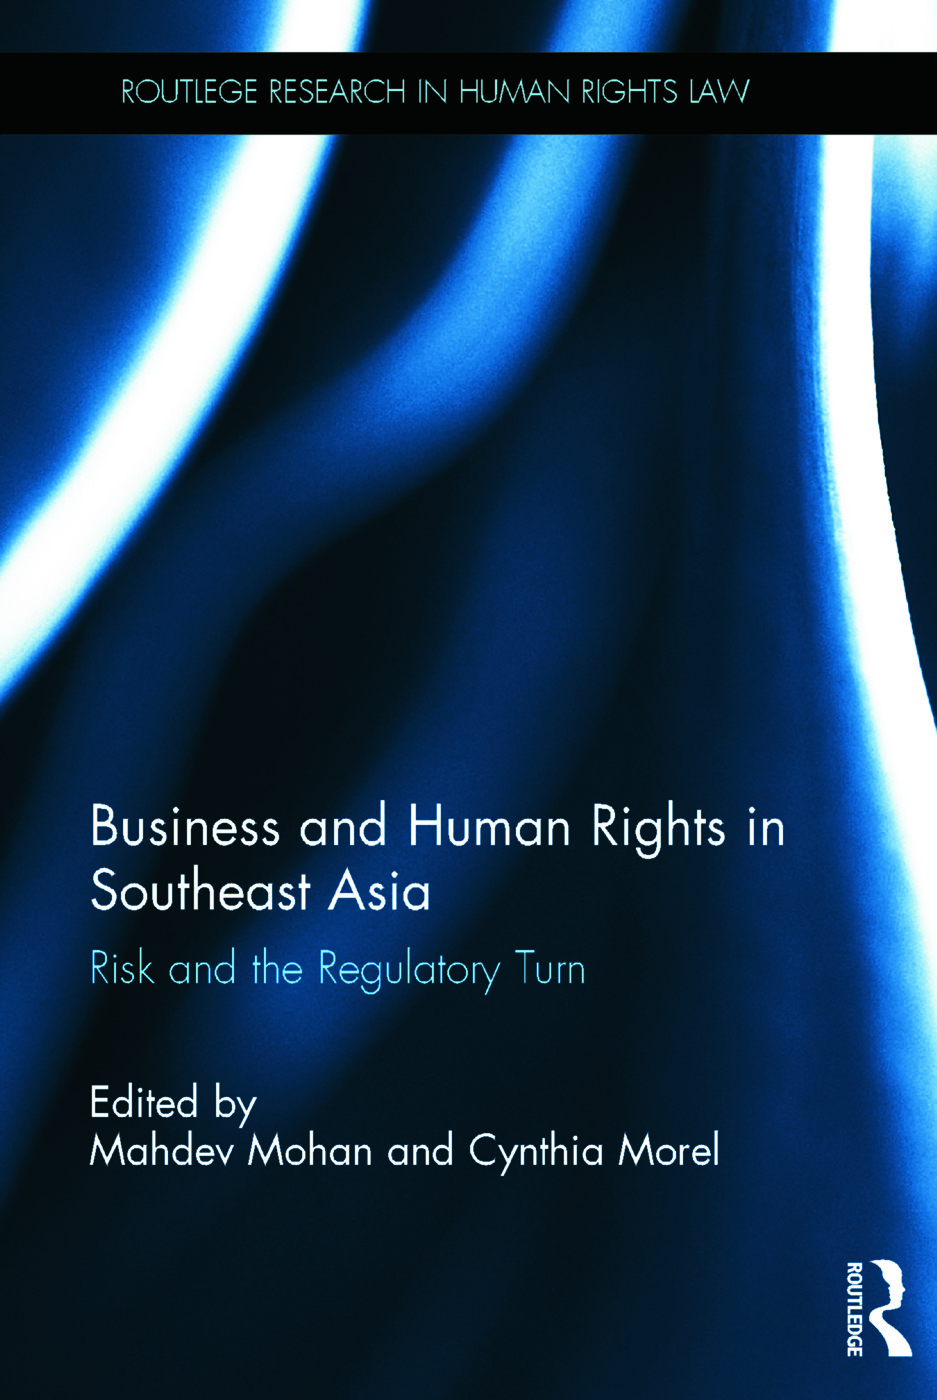 The new frontier: due diligence and developing and implementing human rights audits in Southeast Asia